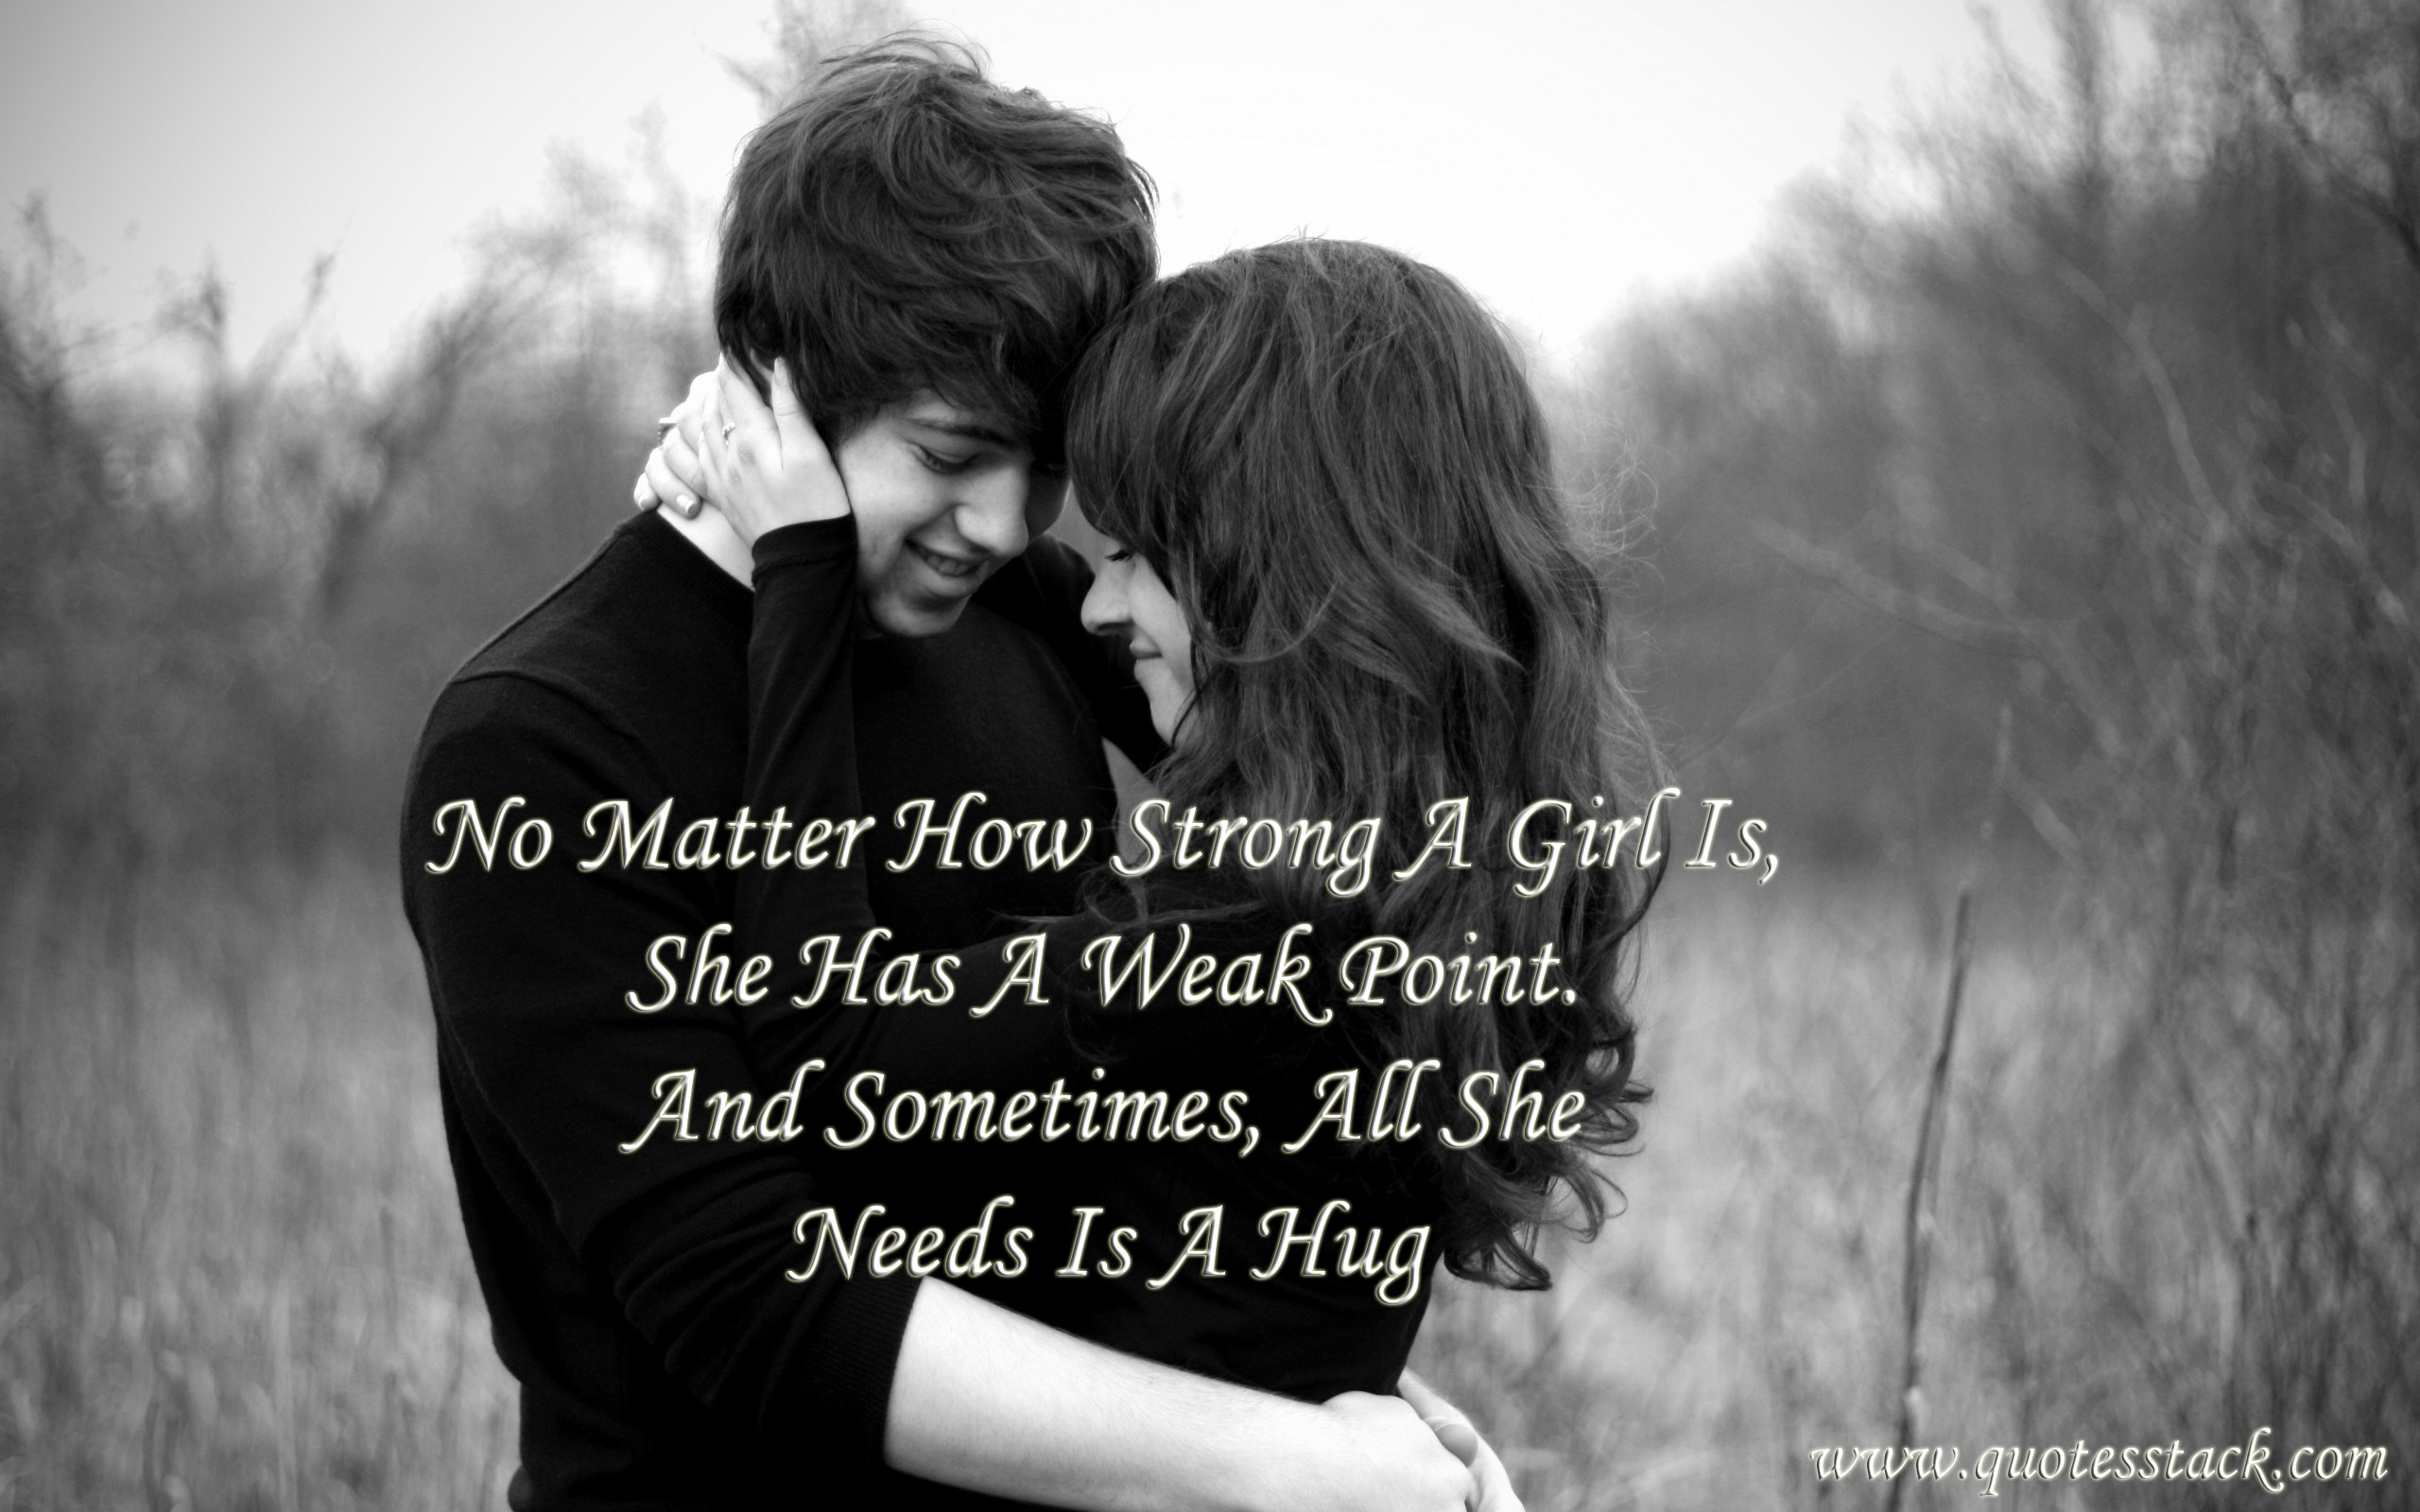 Hug Images Of Lovers With Quotes - HD Photos Gallery